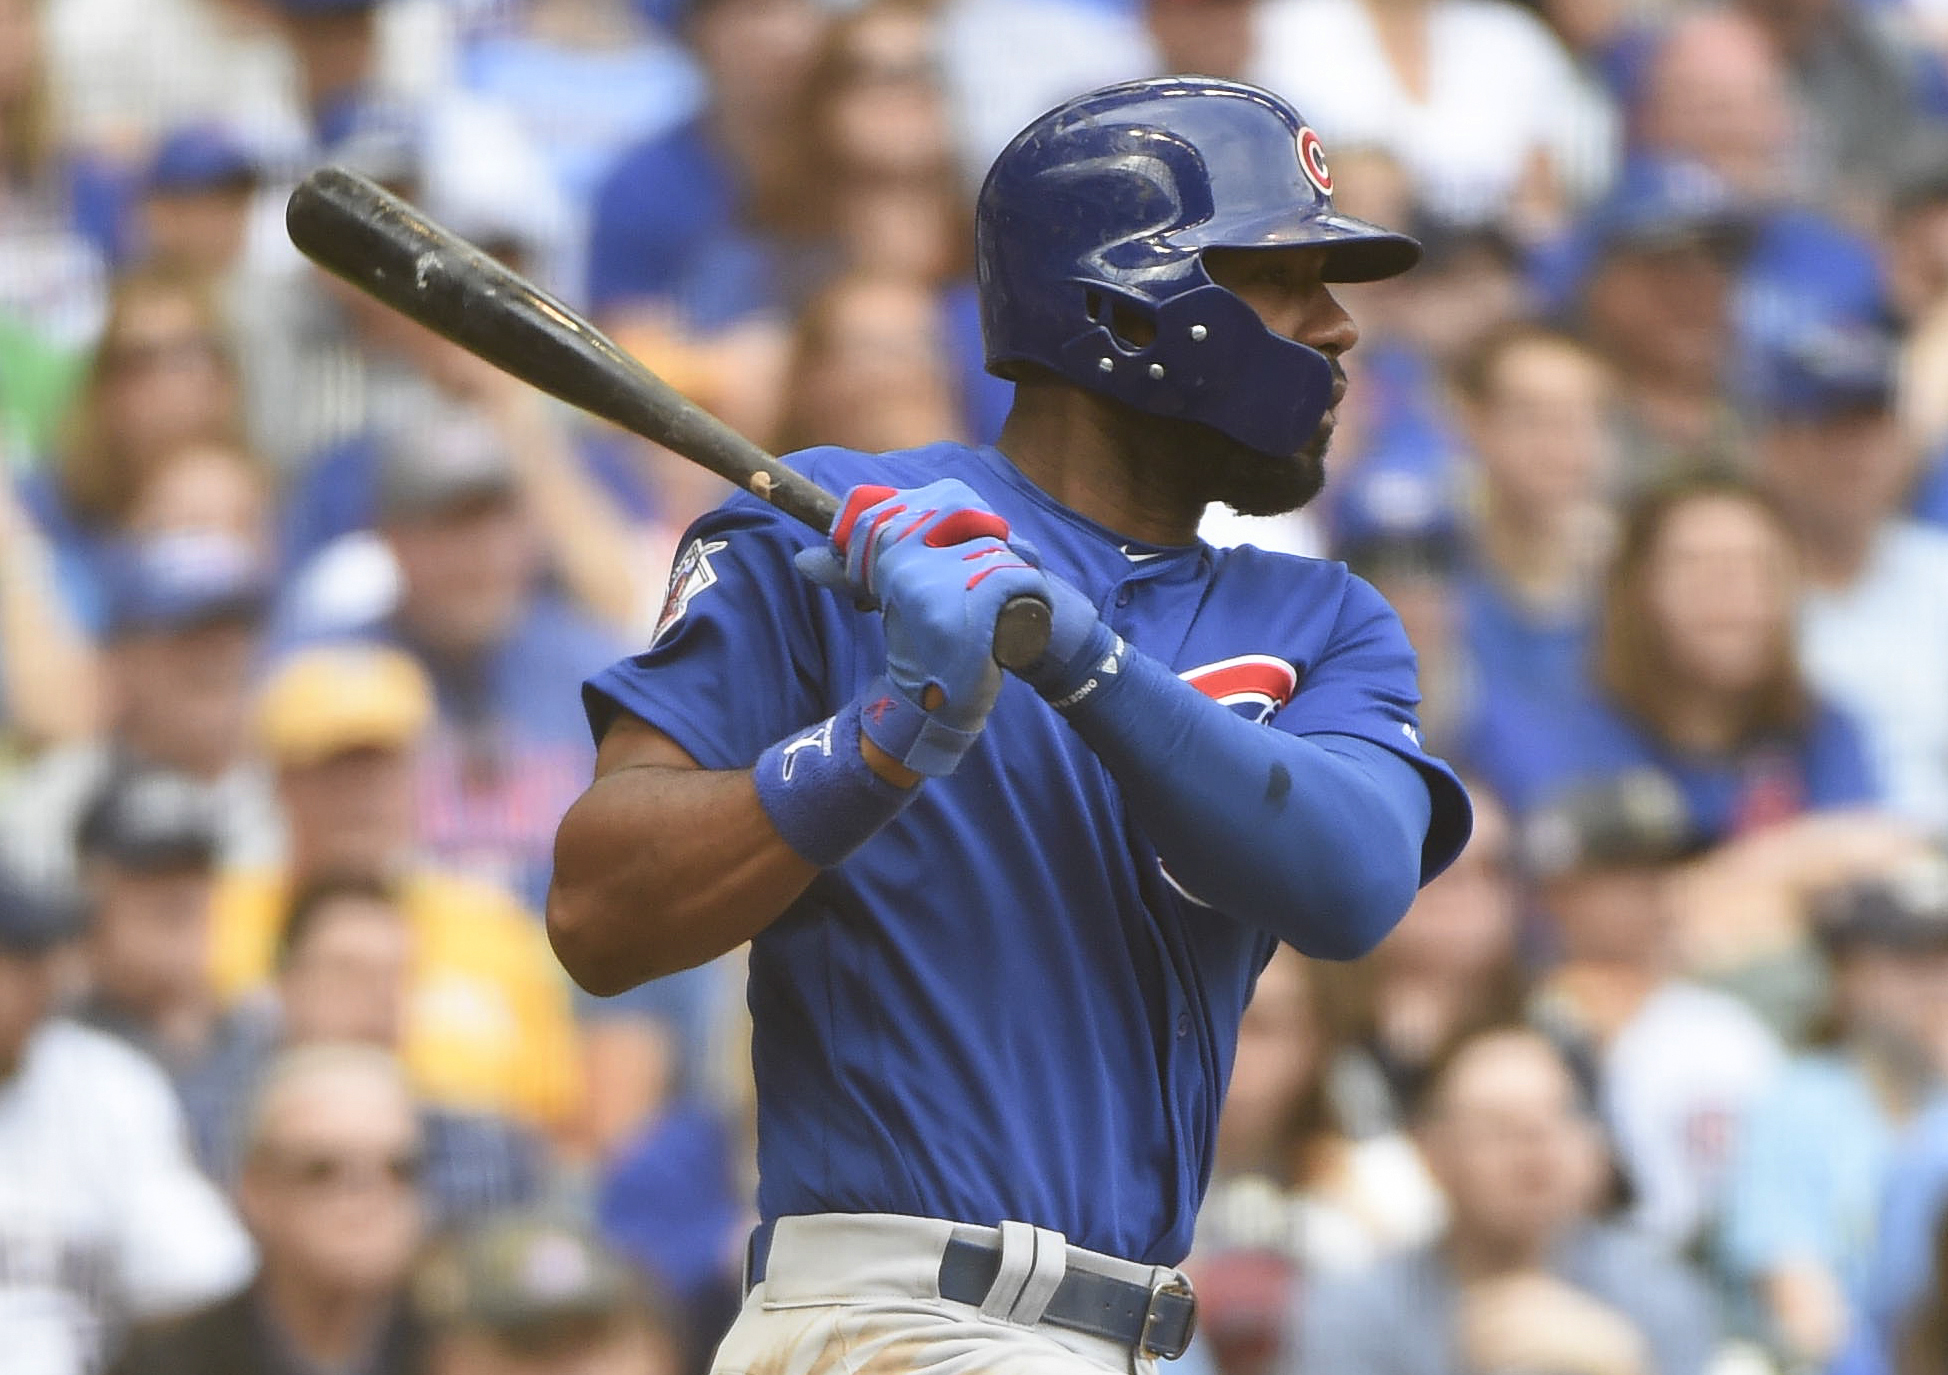 Chicago Cubs: Jason Heyward's Adjustments Paying Off Early